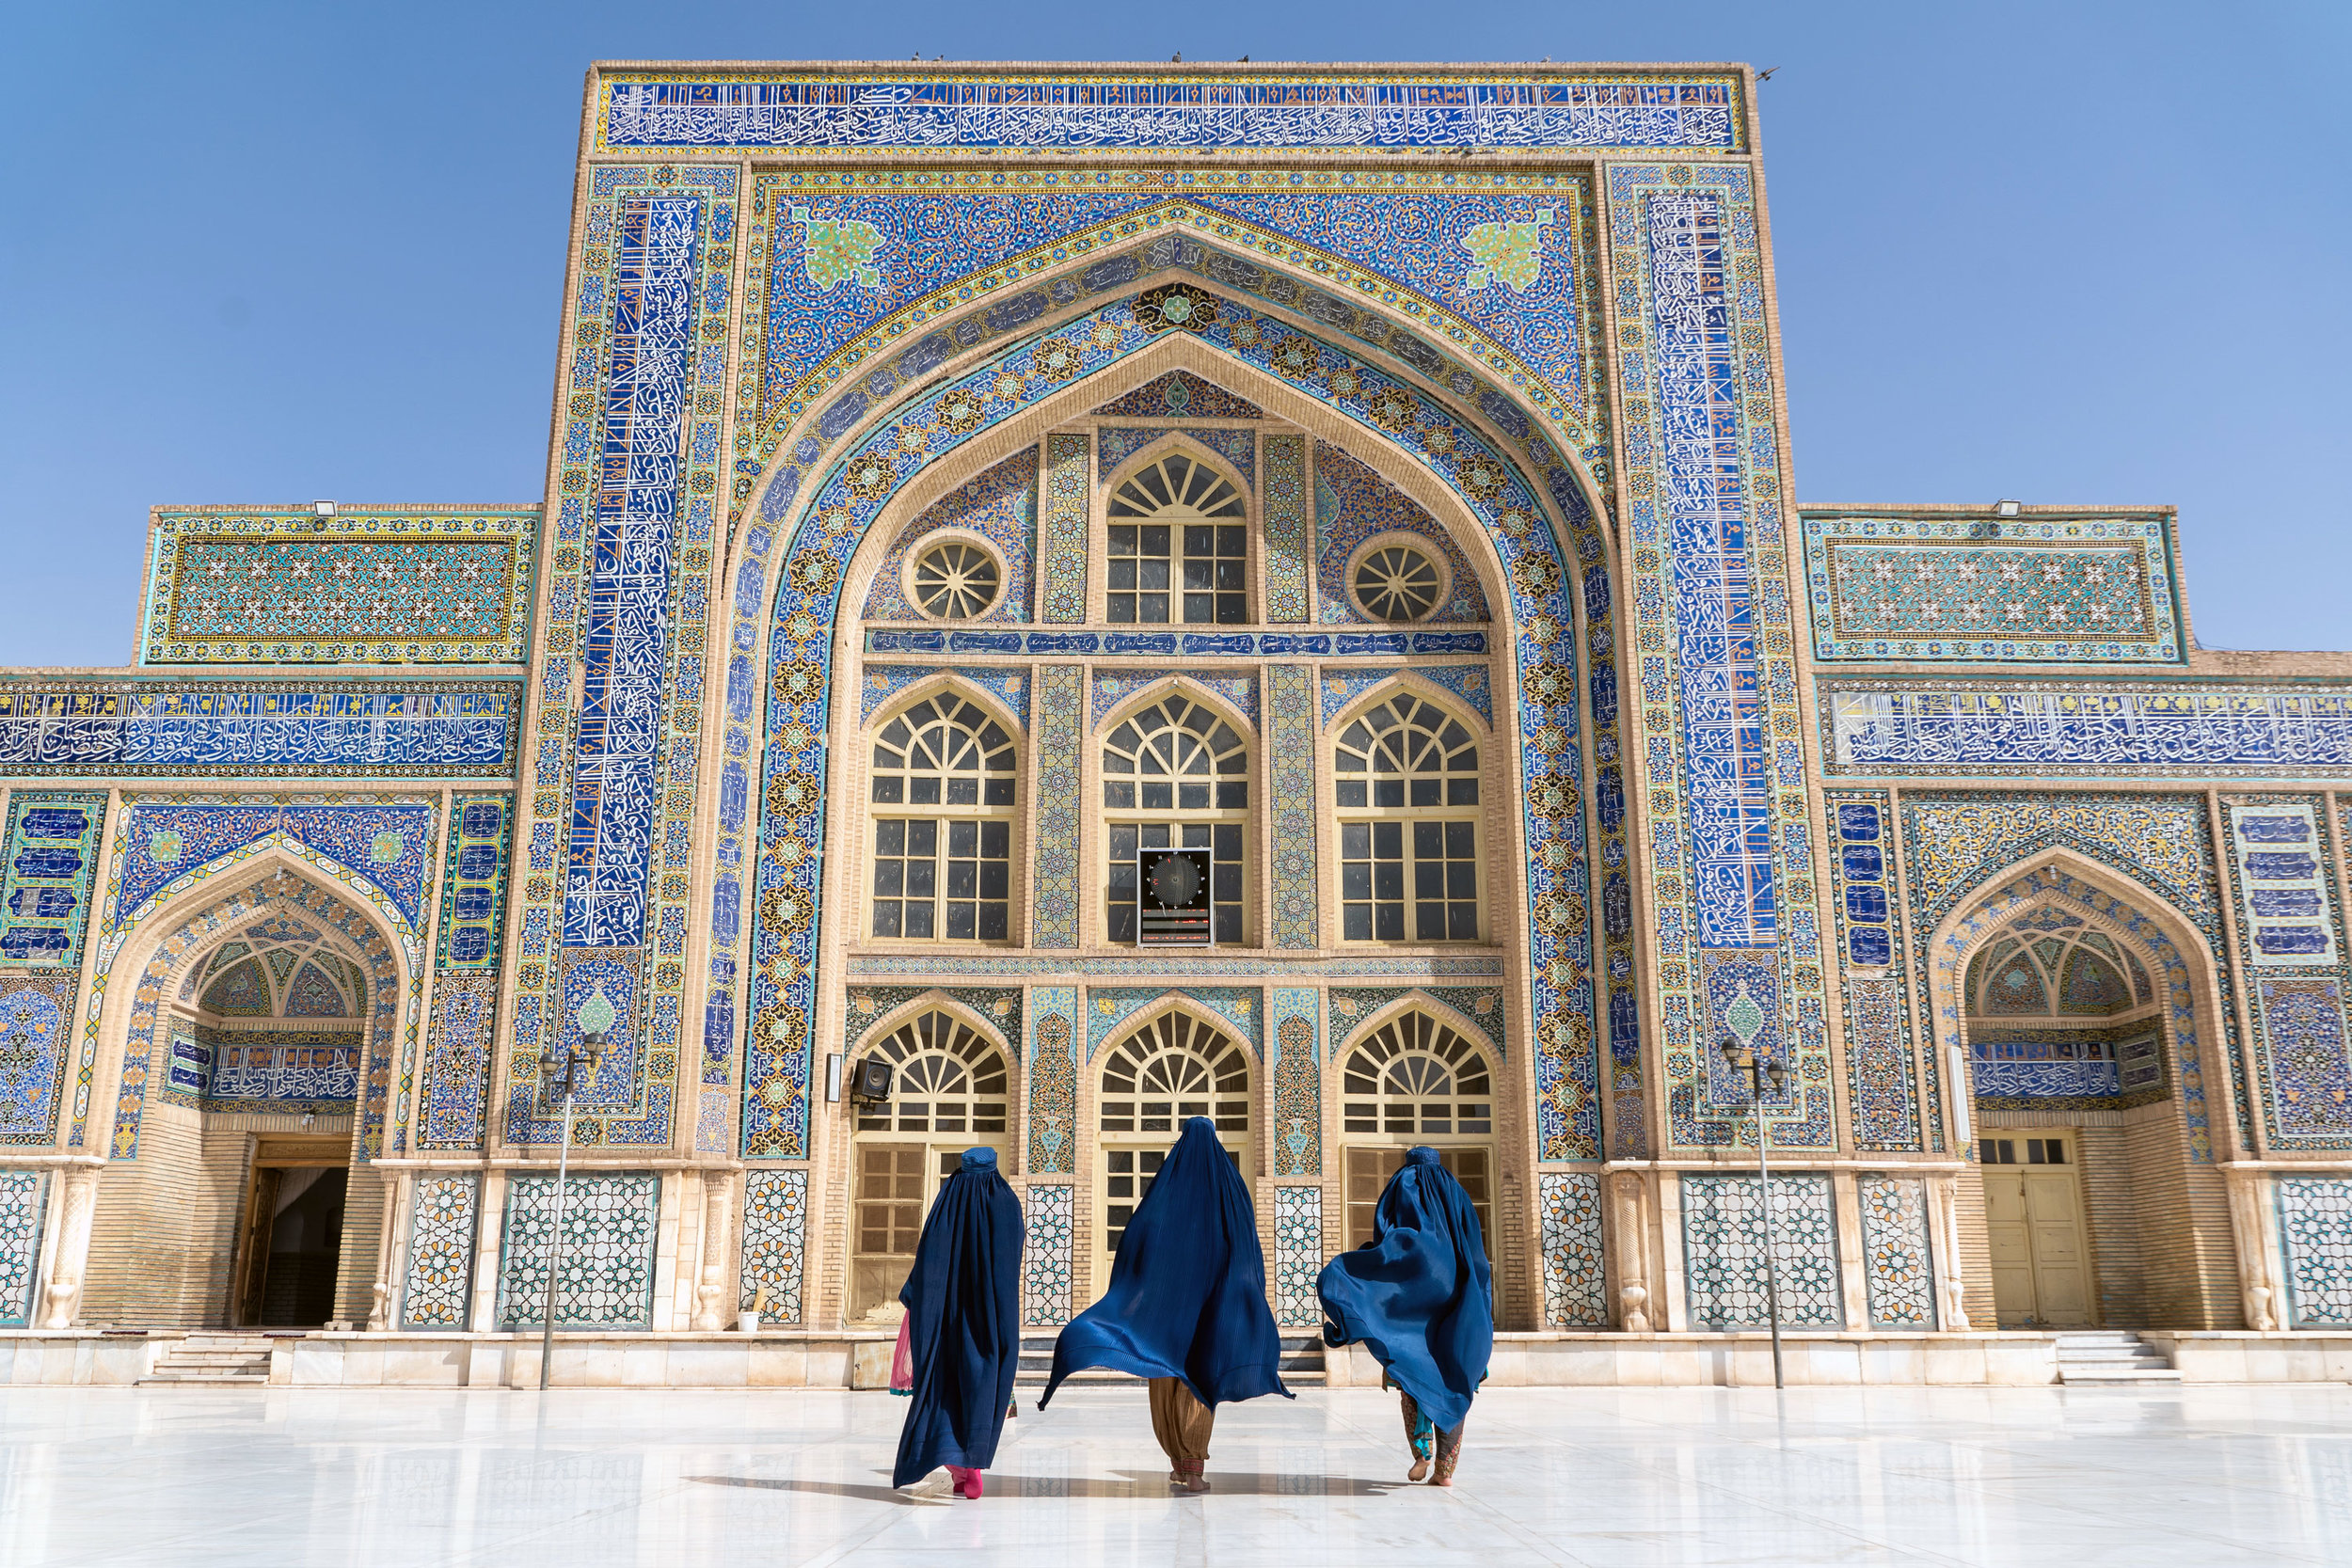 Three women in blue  chadris  walk in front of the interior of Herat's Friday Mosque.